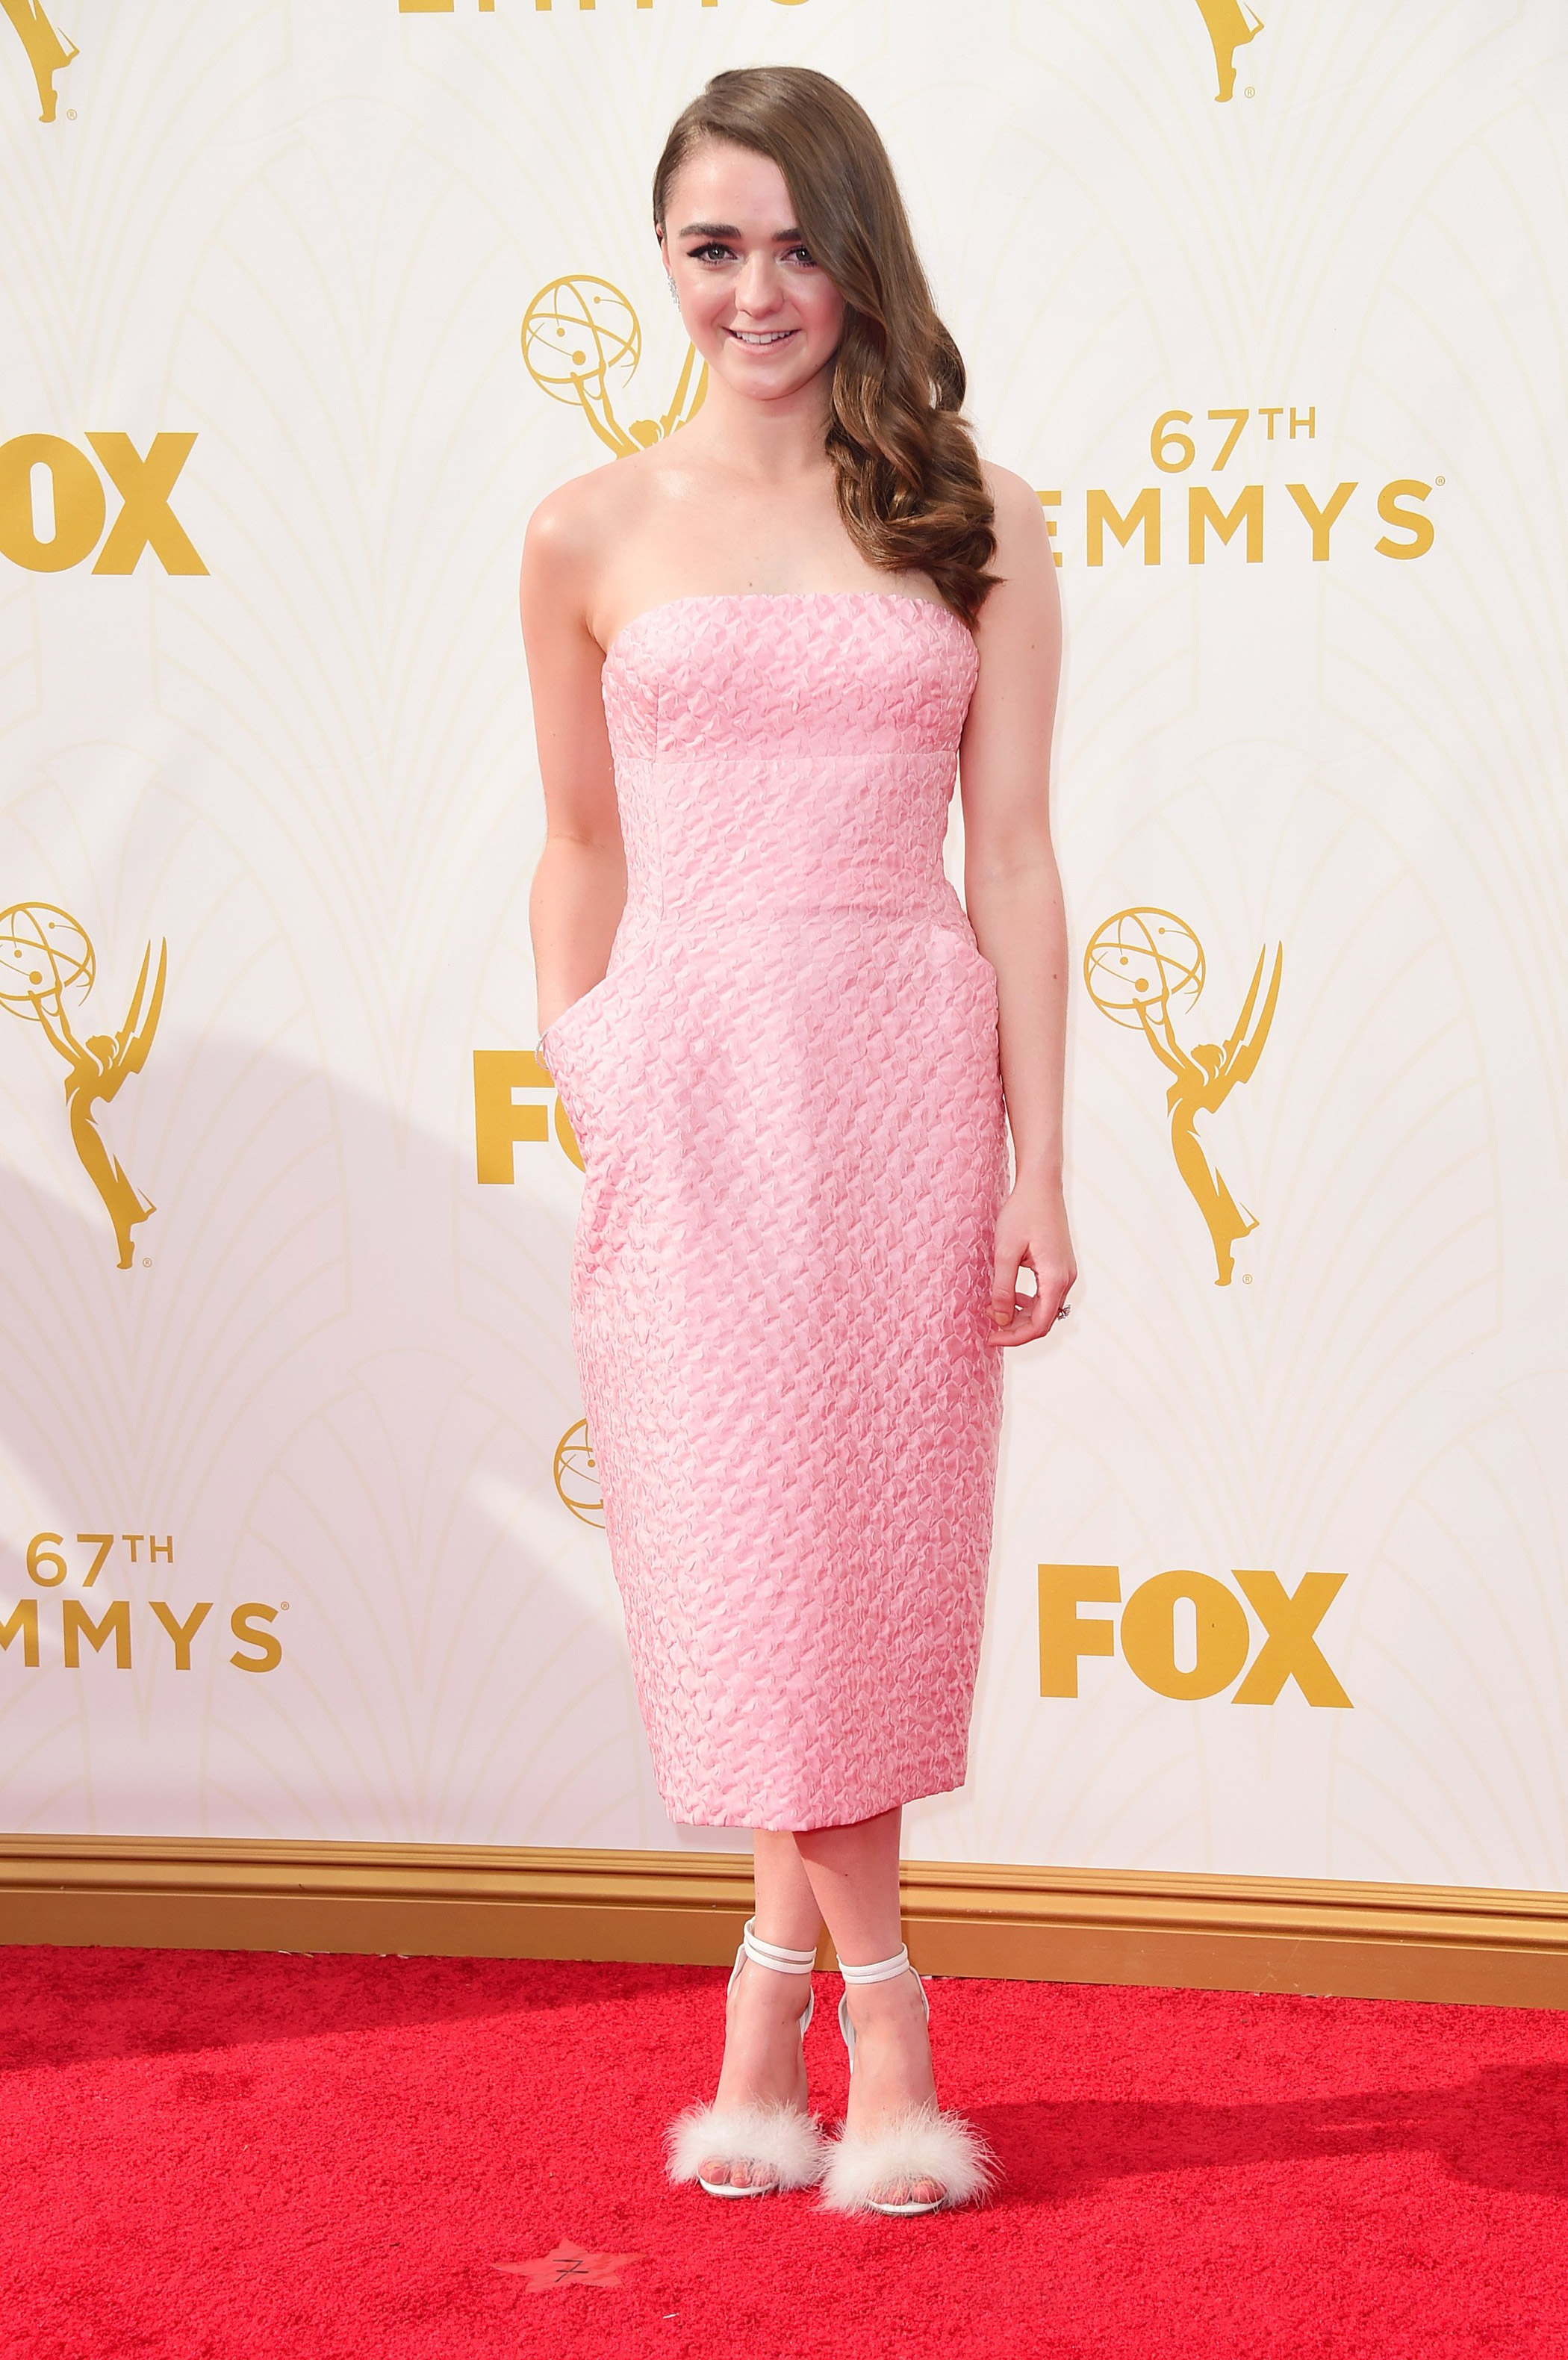 Maisie Williams at the 67th Emmy Award on Sept. 20, 2015 in Los Angeles.